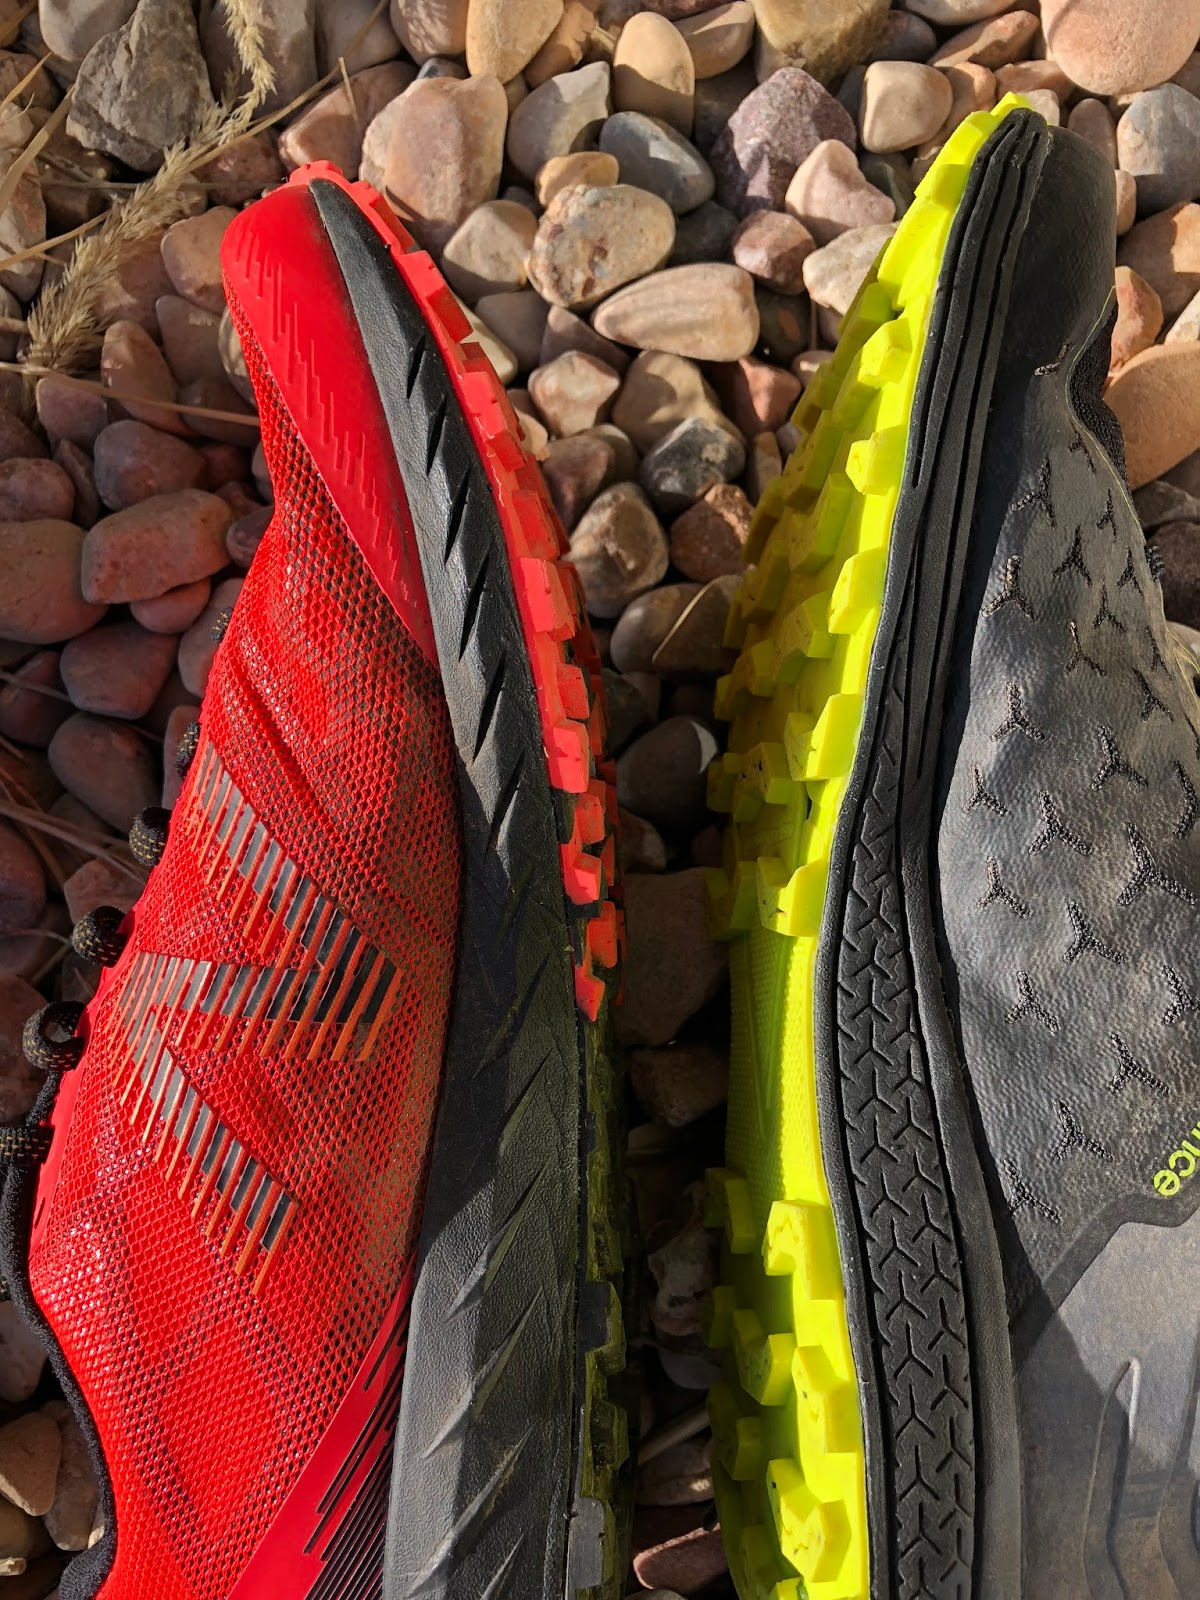 b7987c2a0070e The midsole geometry appears to fill in the mid foot area with more of a  bowing out than the Summit Trail s more abrupt vertical side walls.